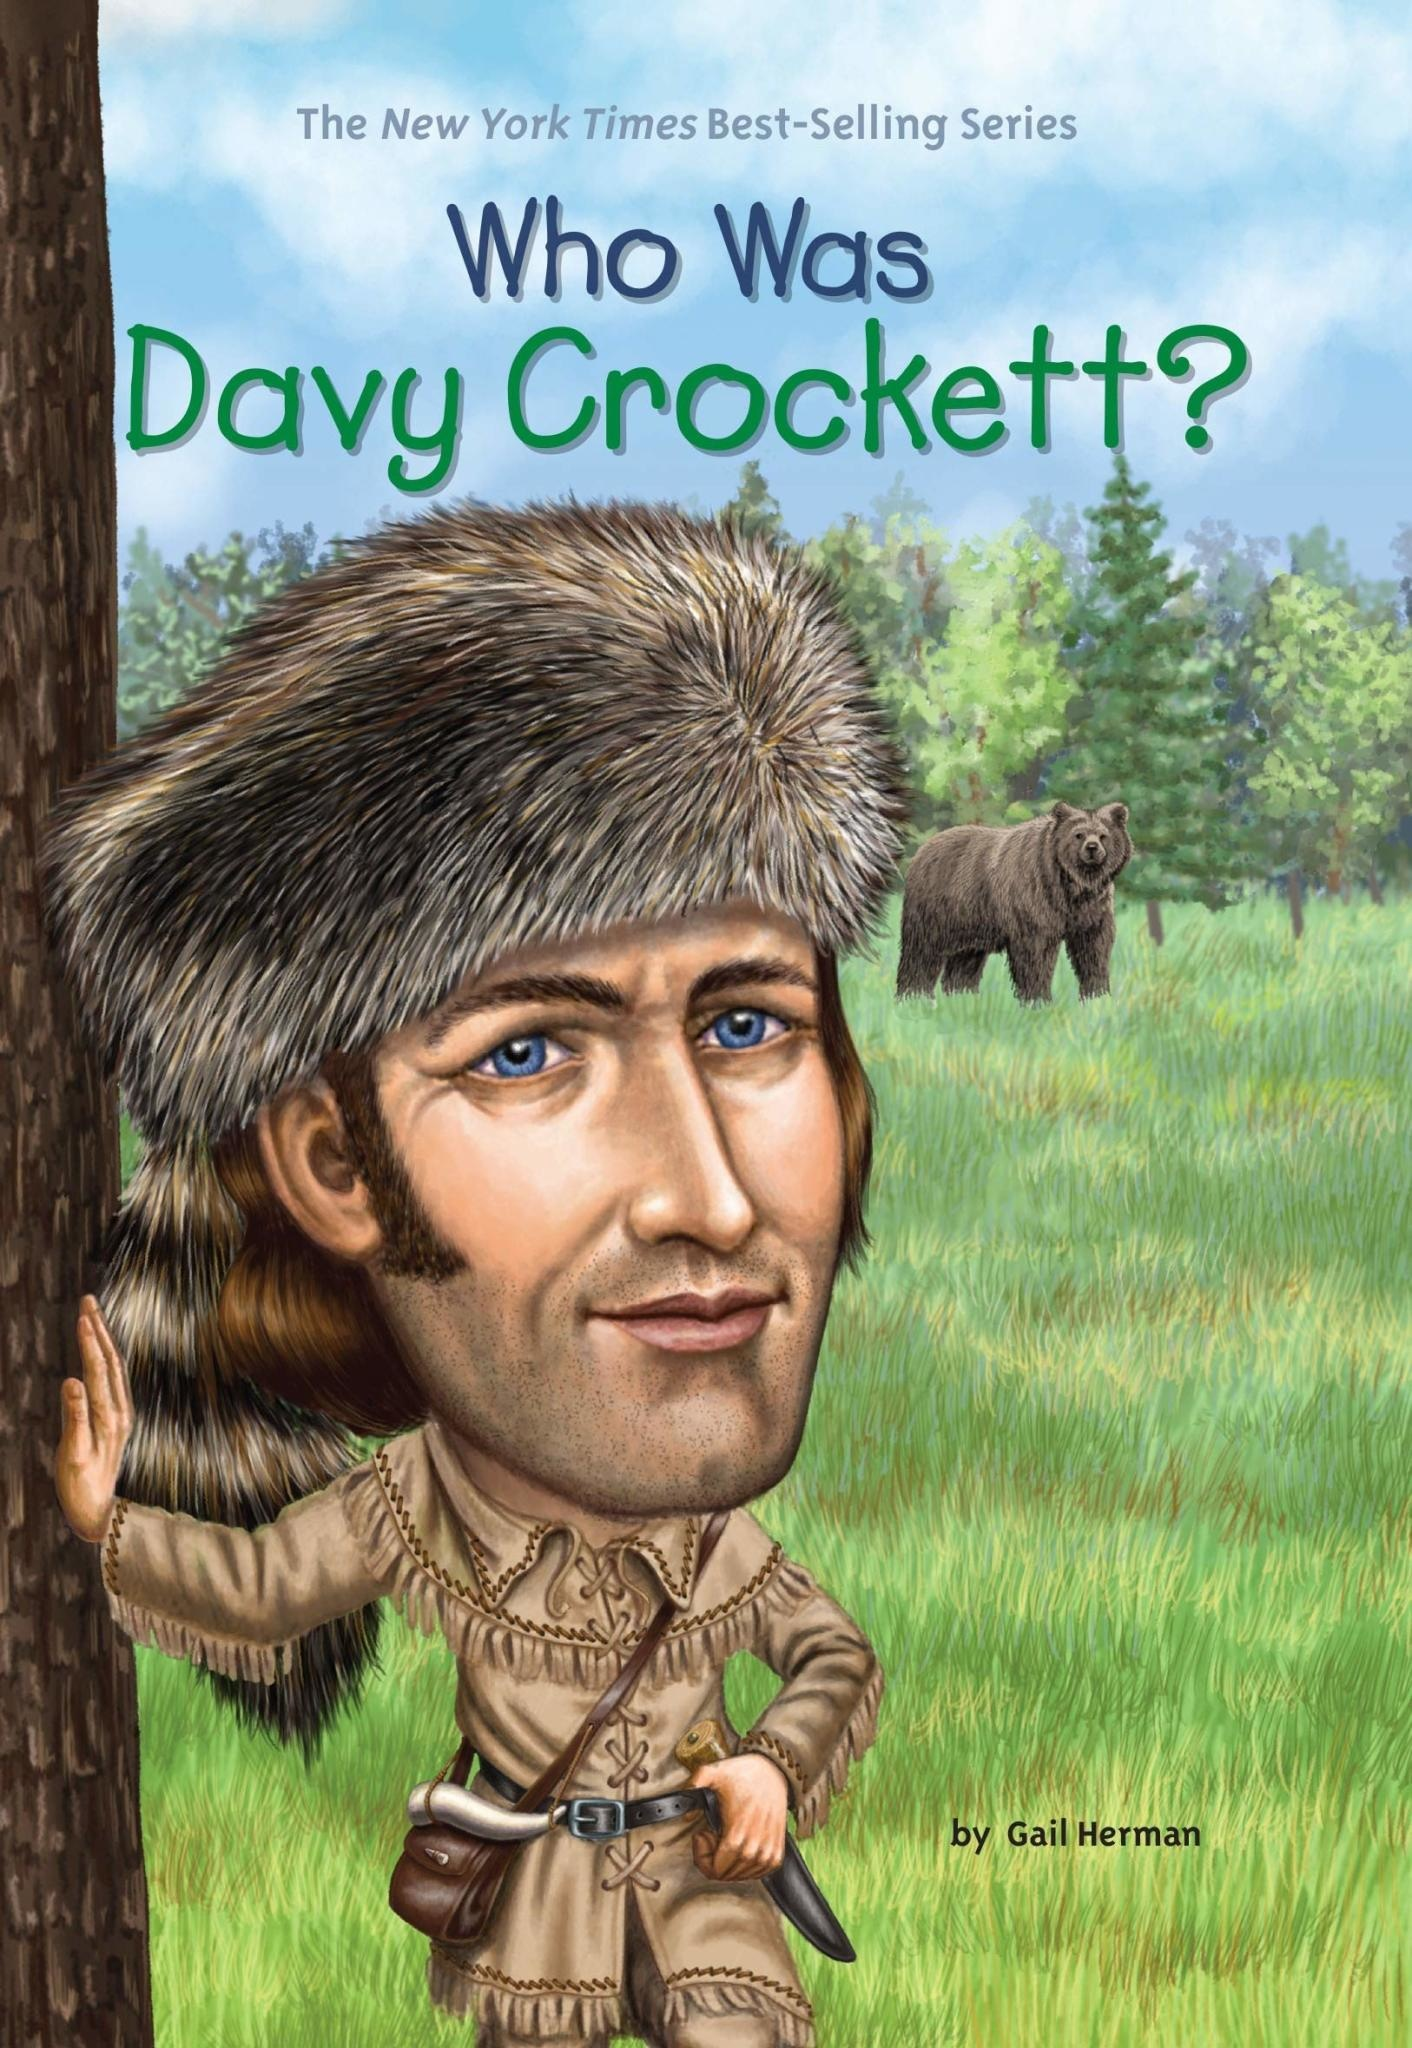 Who Was Davy Crockett? Paperback Book